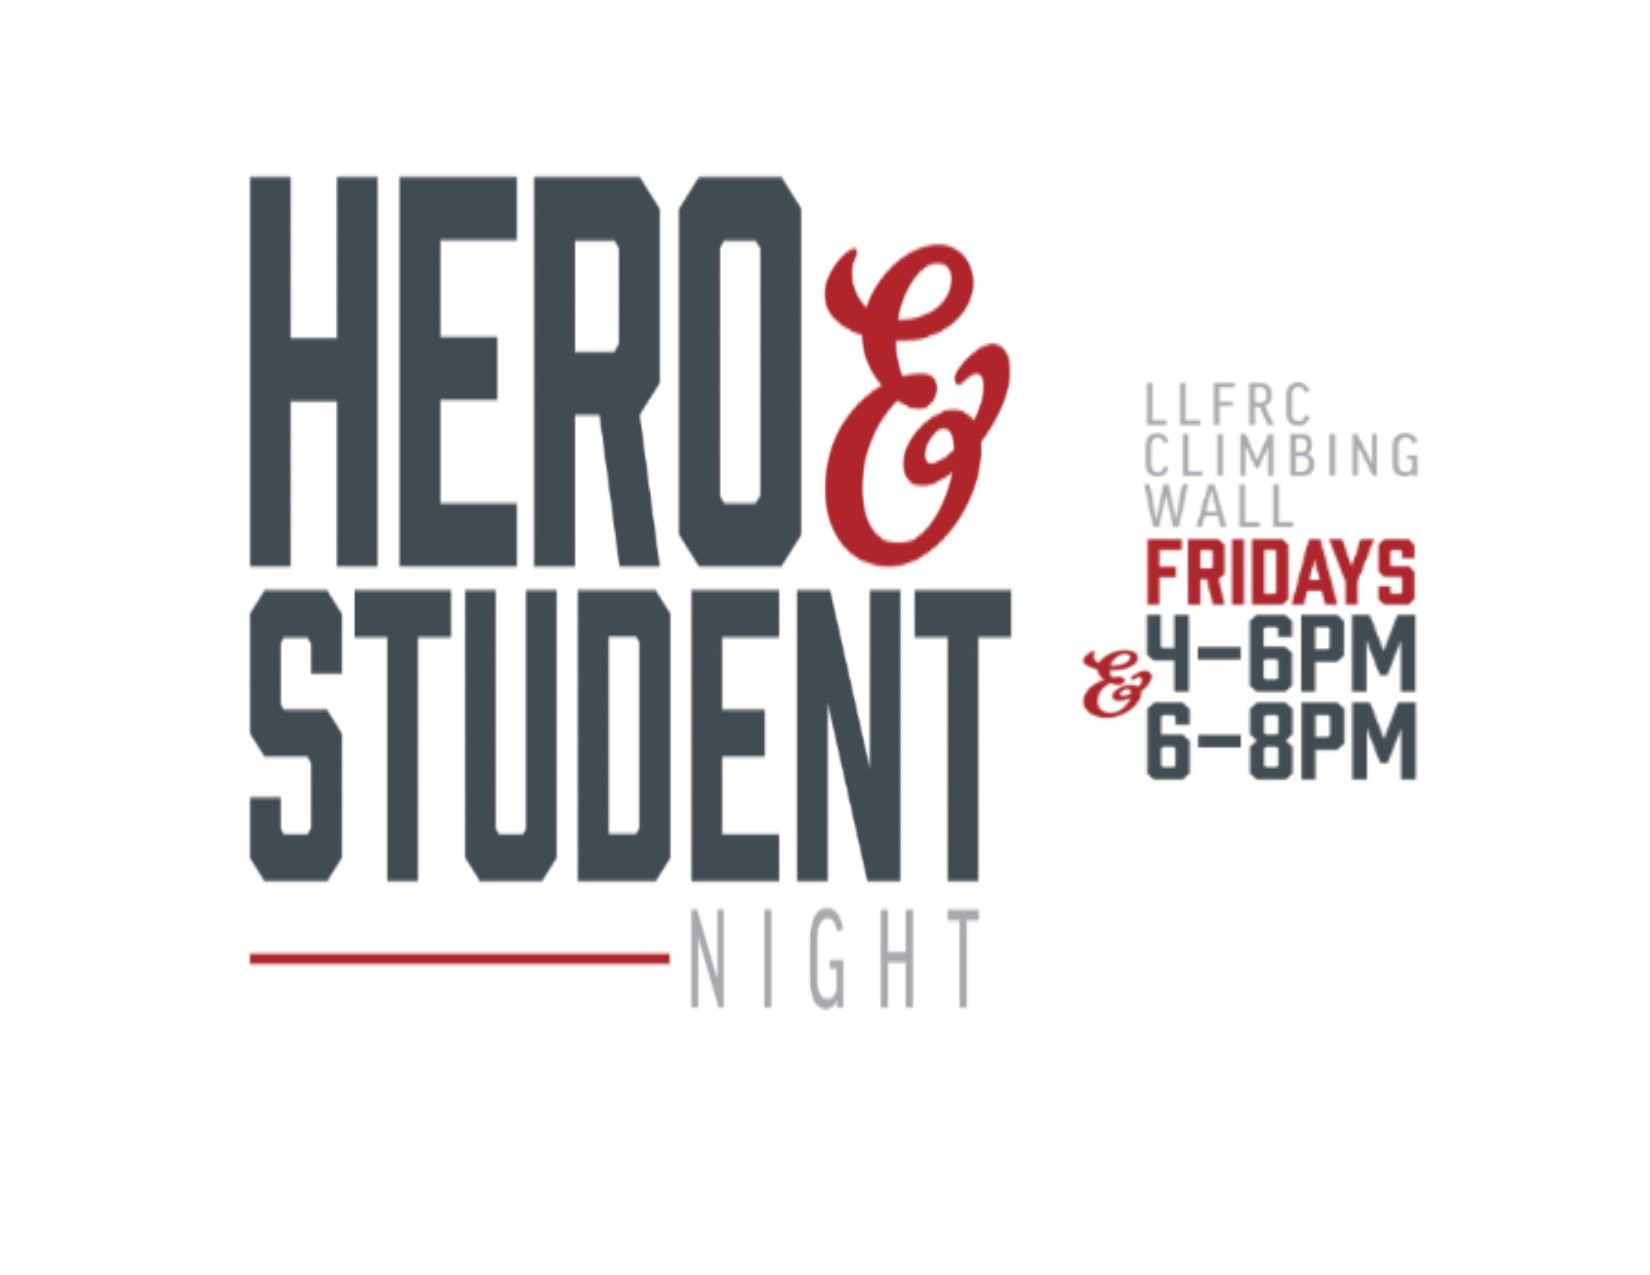 2018 Hero-Student Night